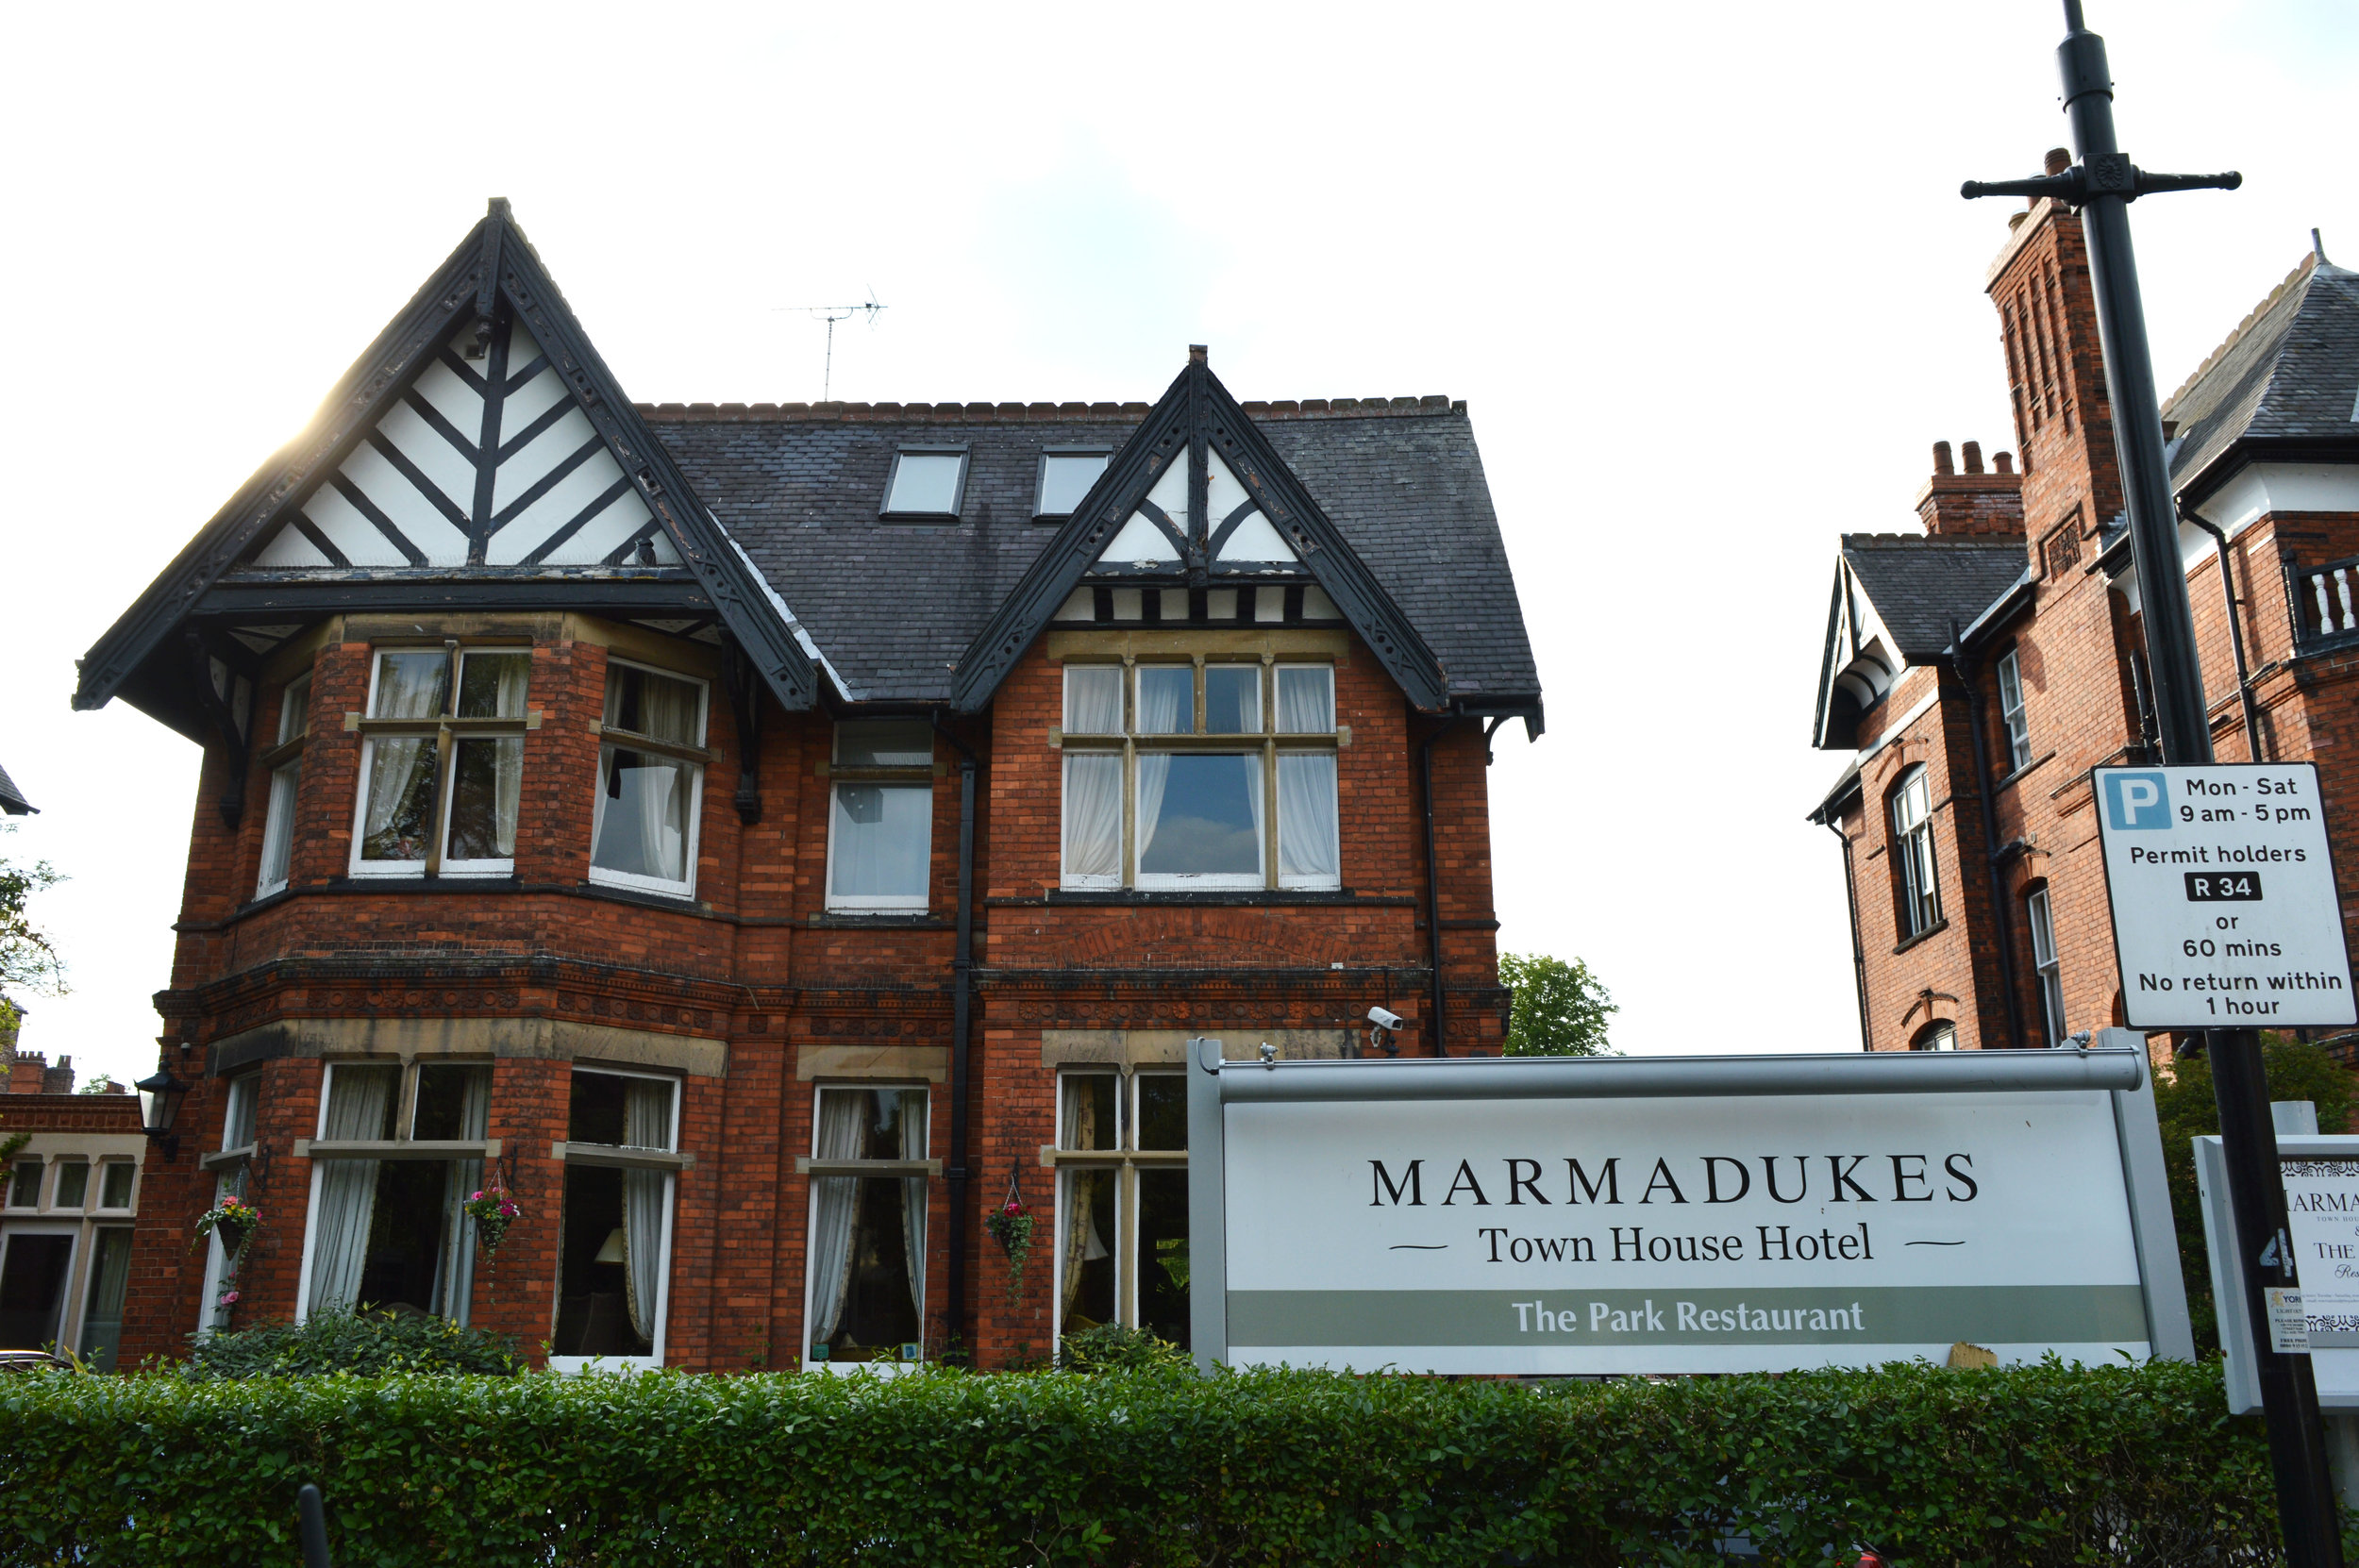 The Park Restaurant at Marmadukes hotel in York review